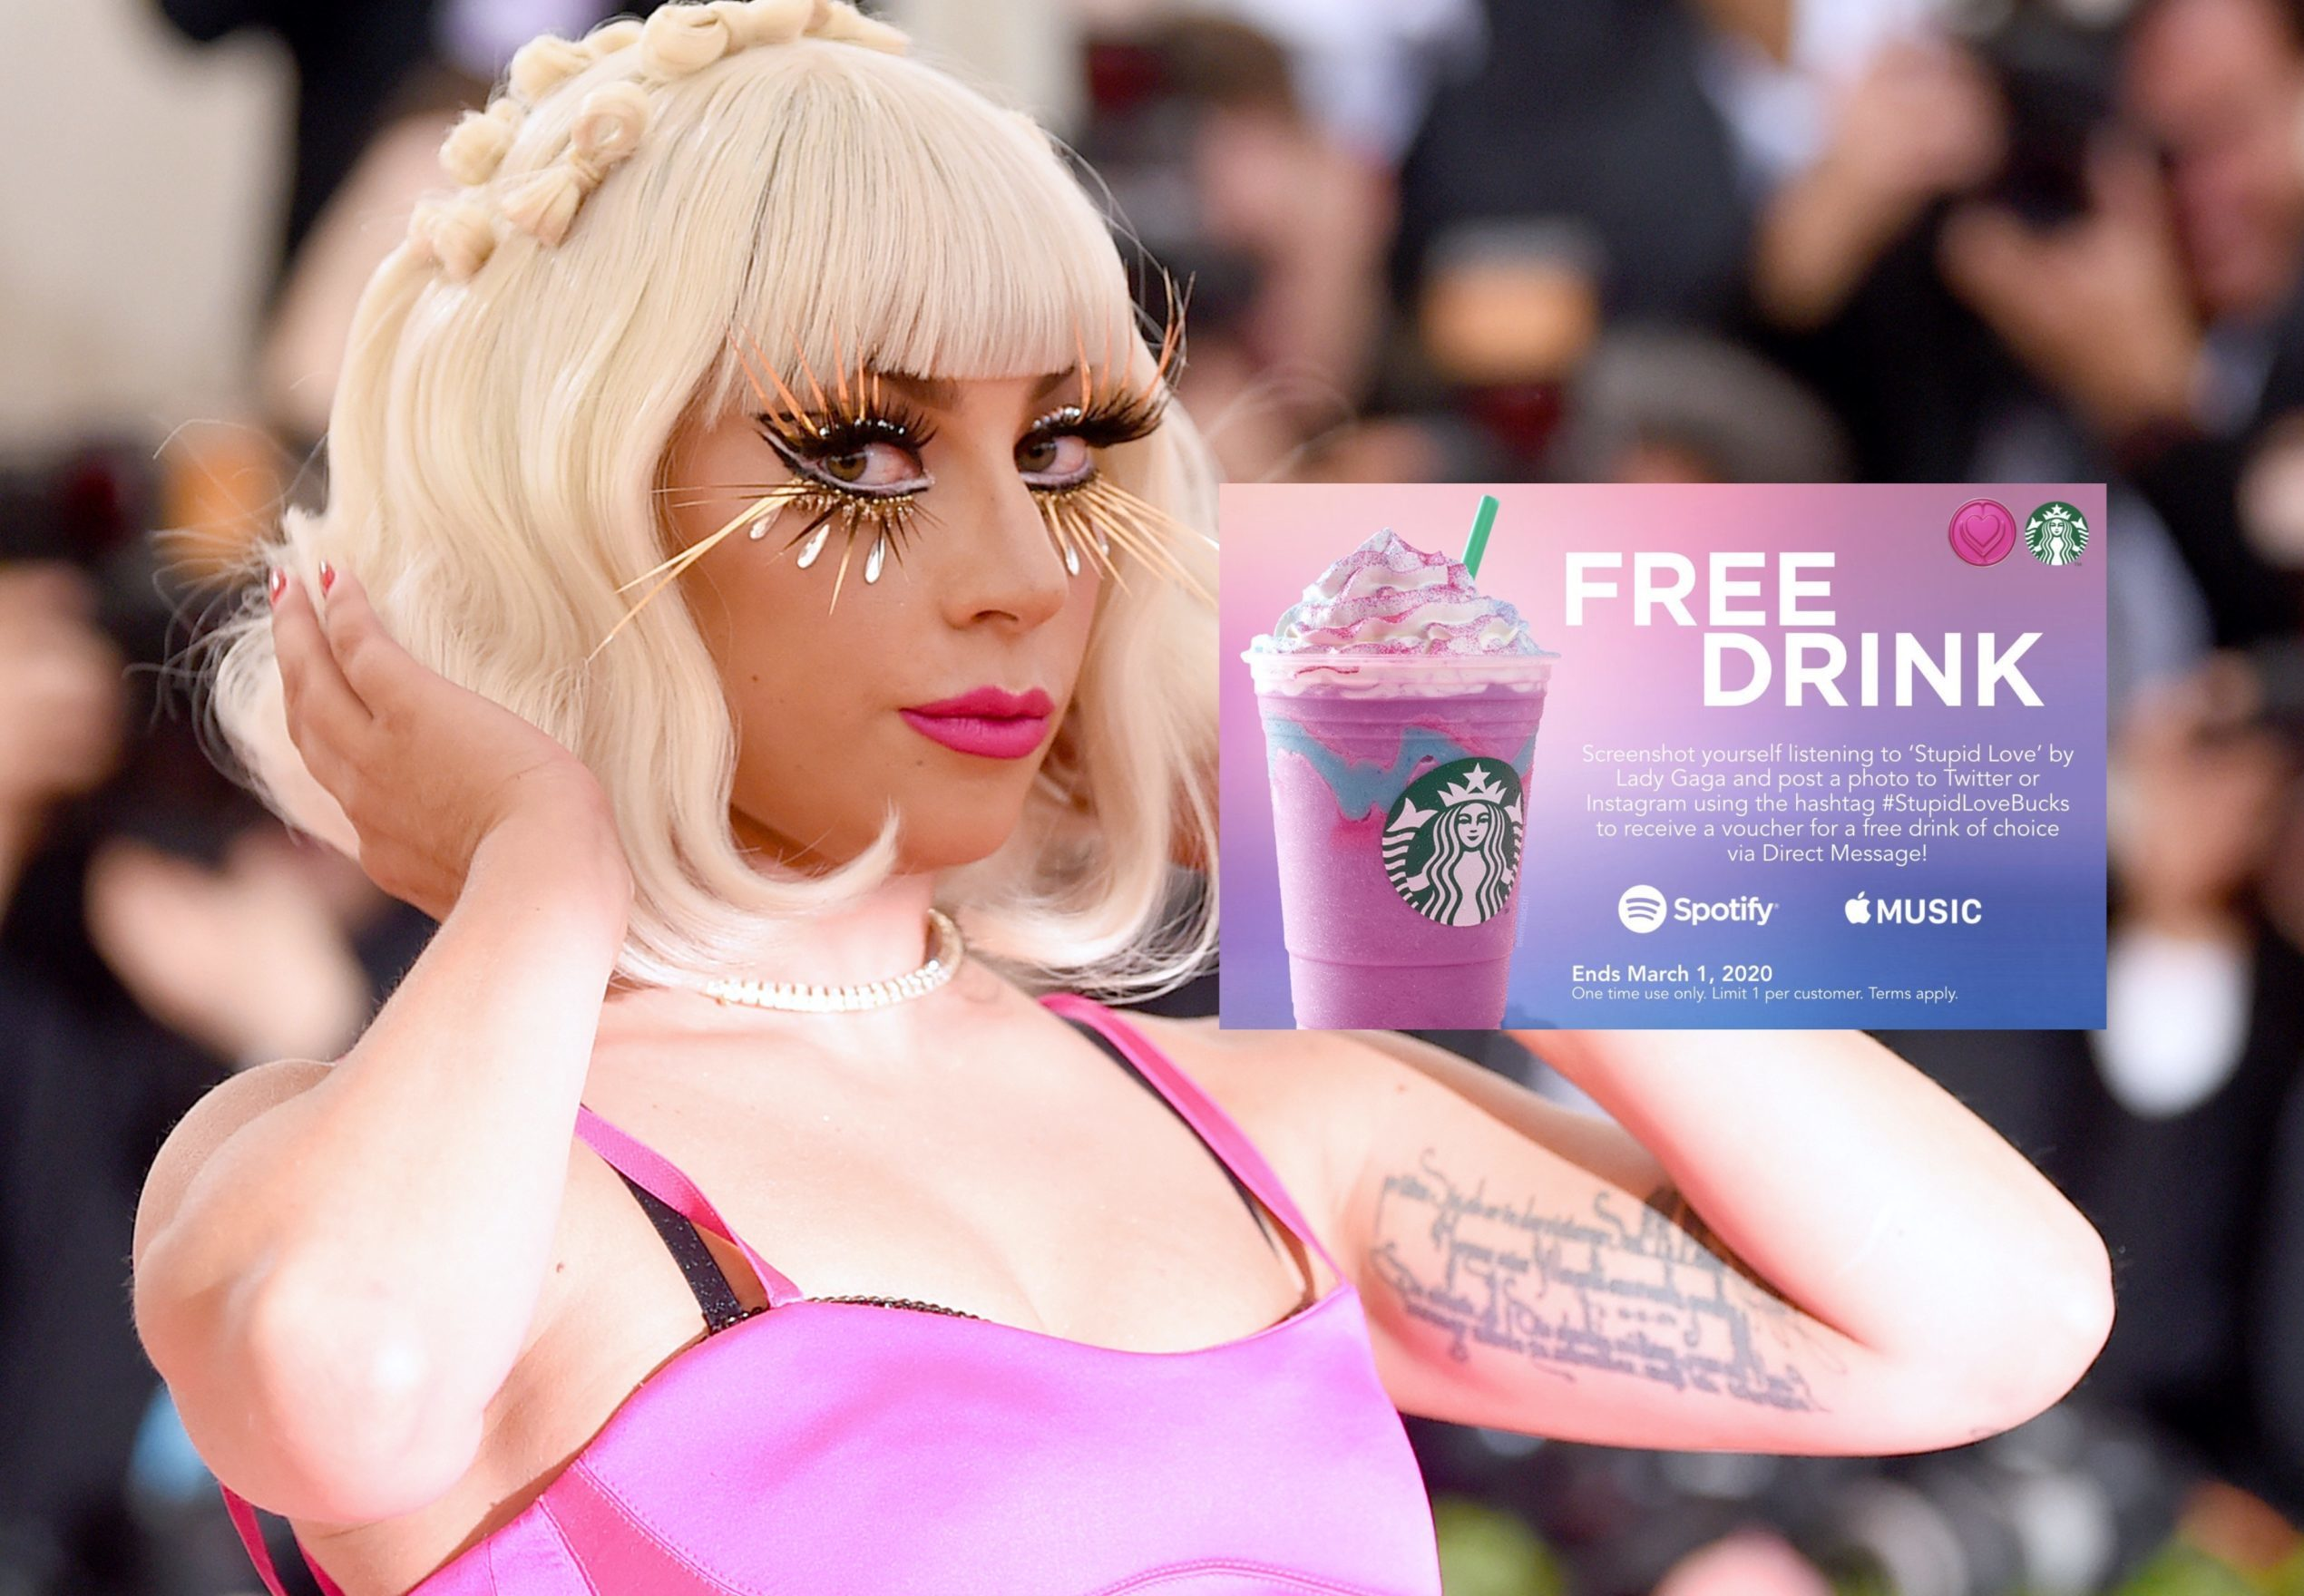 """There's a Starbucks scam circulating online by Lady Gaga fans determined to have """"Stupid Love"""" be streamed to number one. (Jamie McCarthy/Getty Images)"""